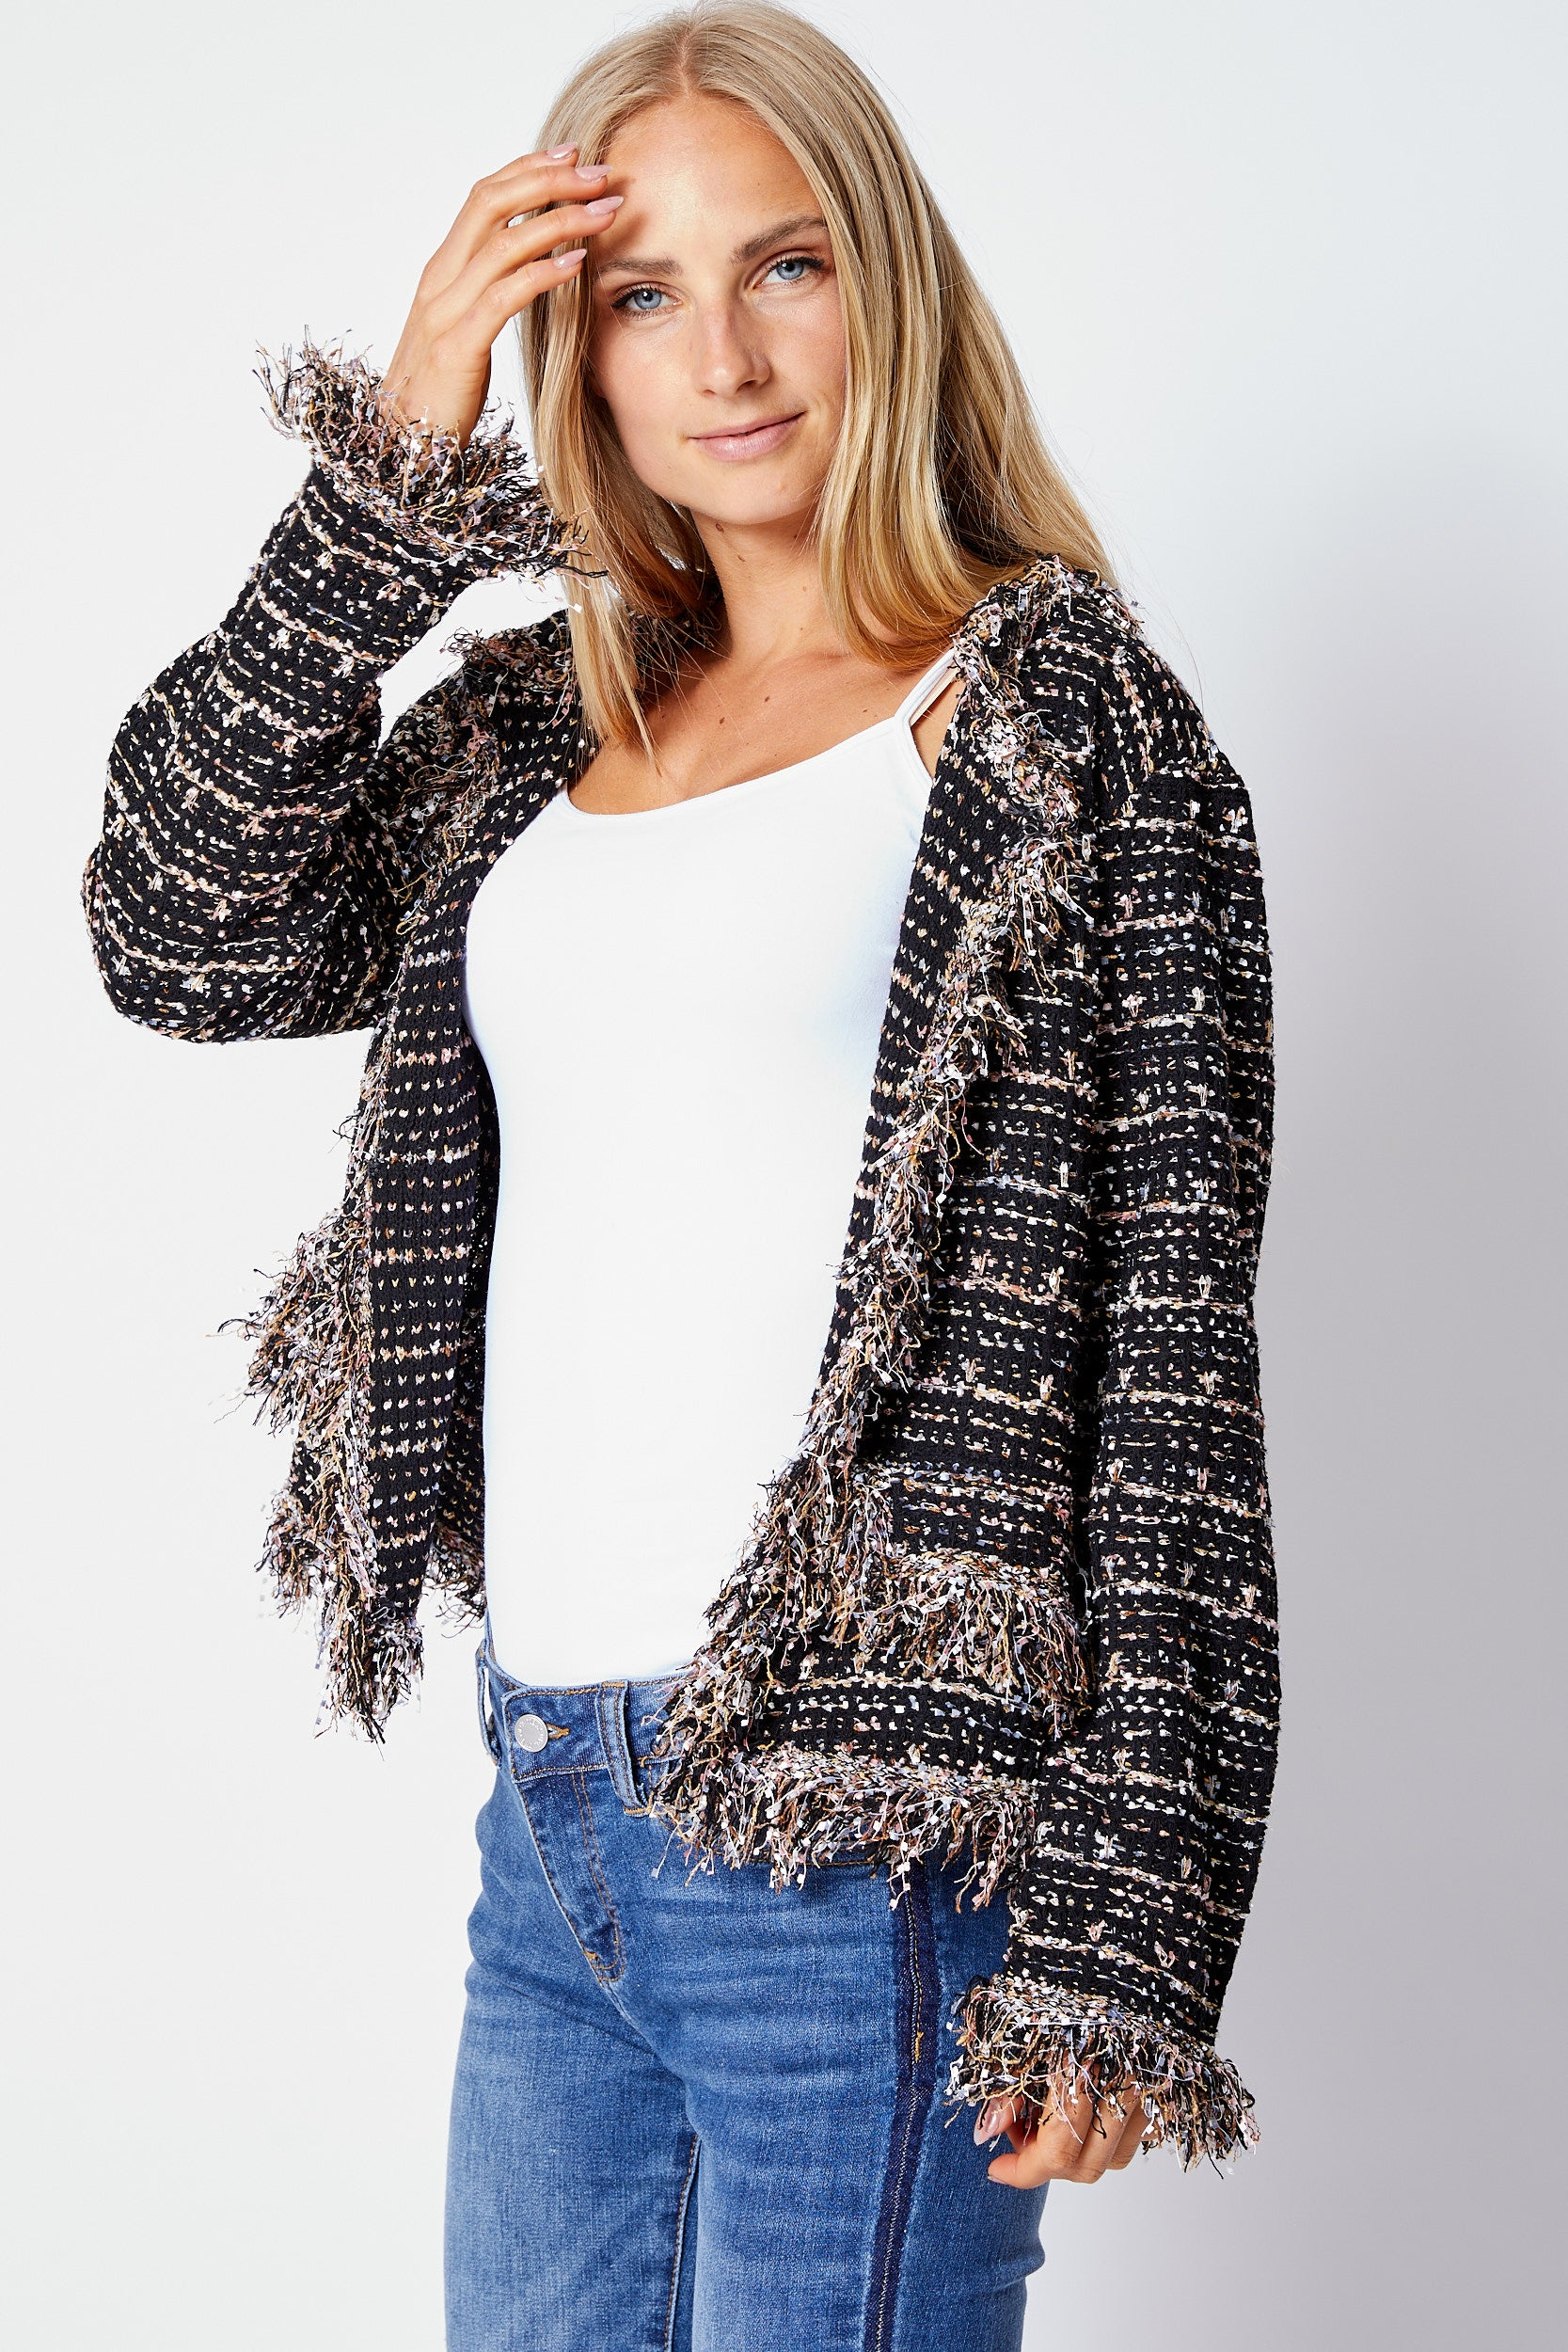 Knit Tweed Jacket - Jacqueline B Clothing